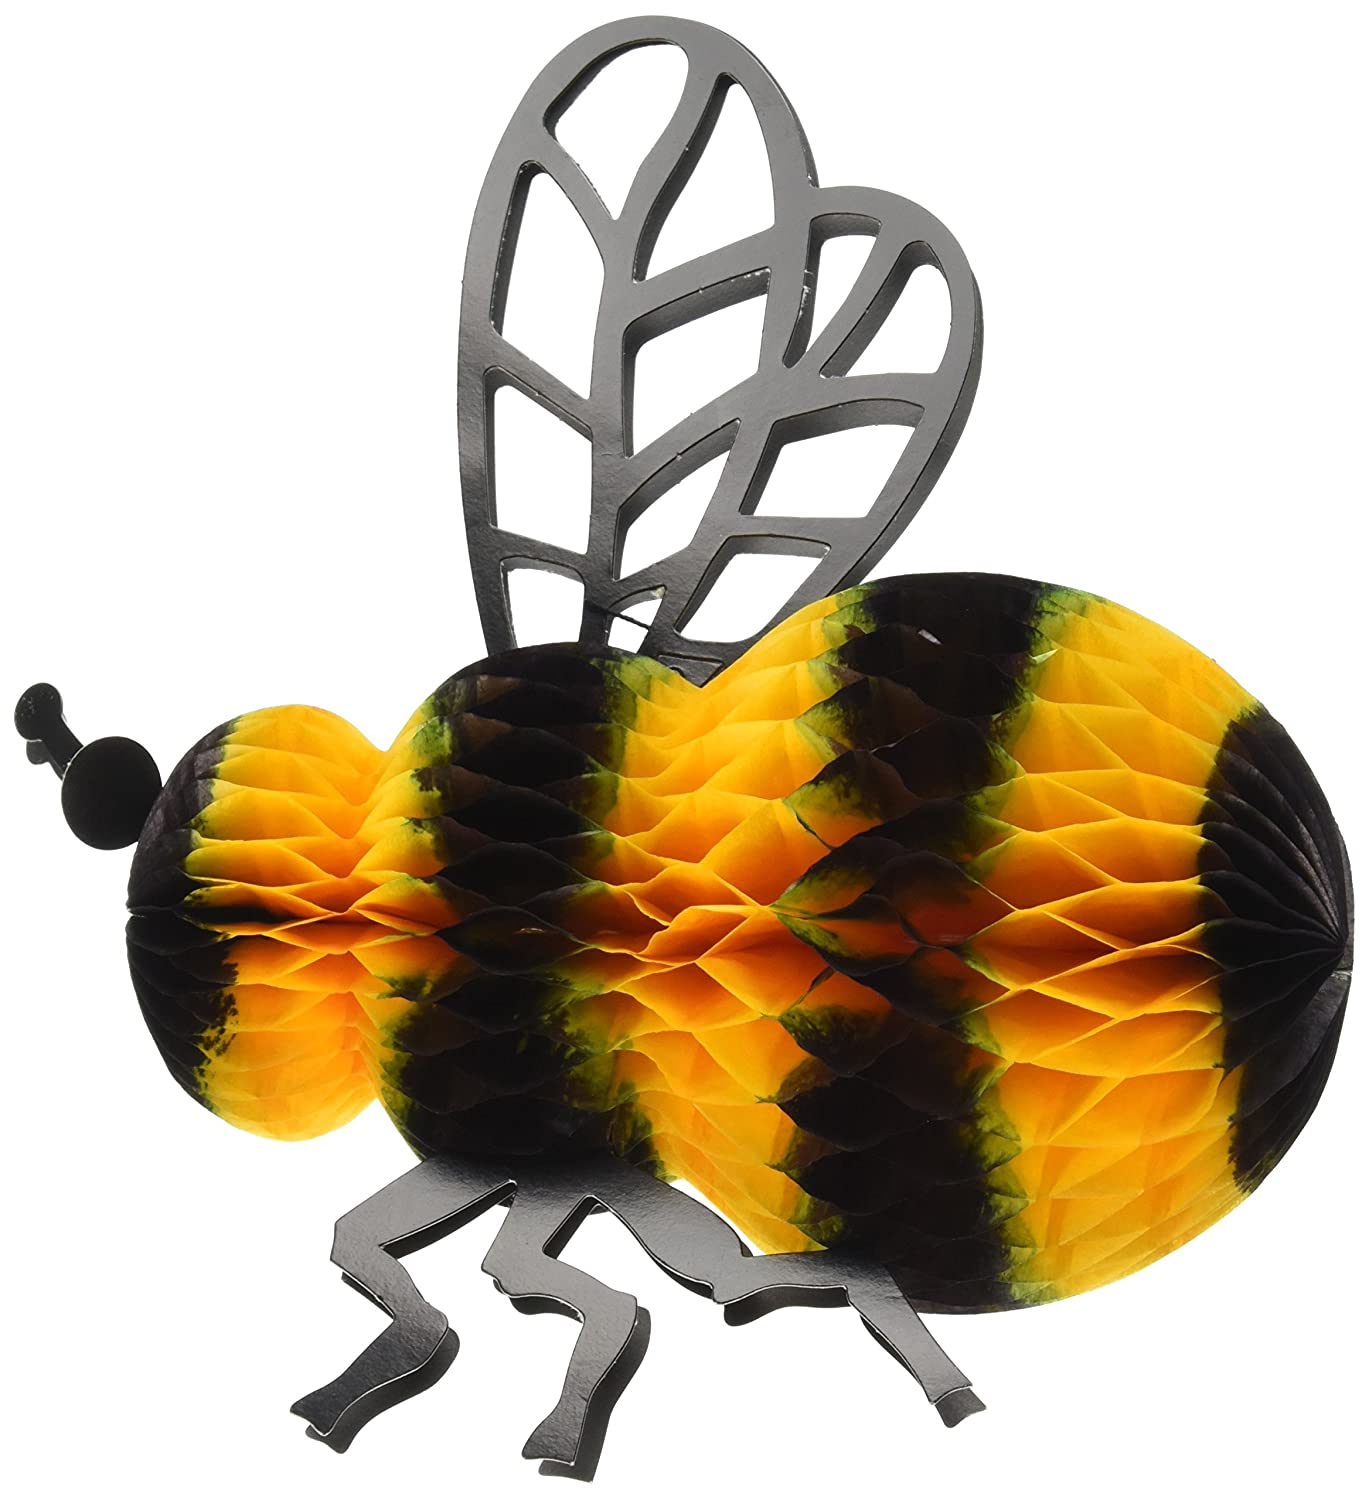 Beistle 55714 Tissue Bee, 8-Inch The Beistle Company